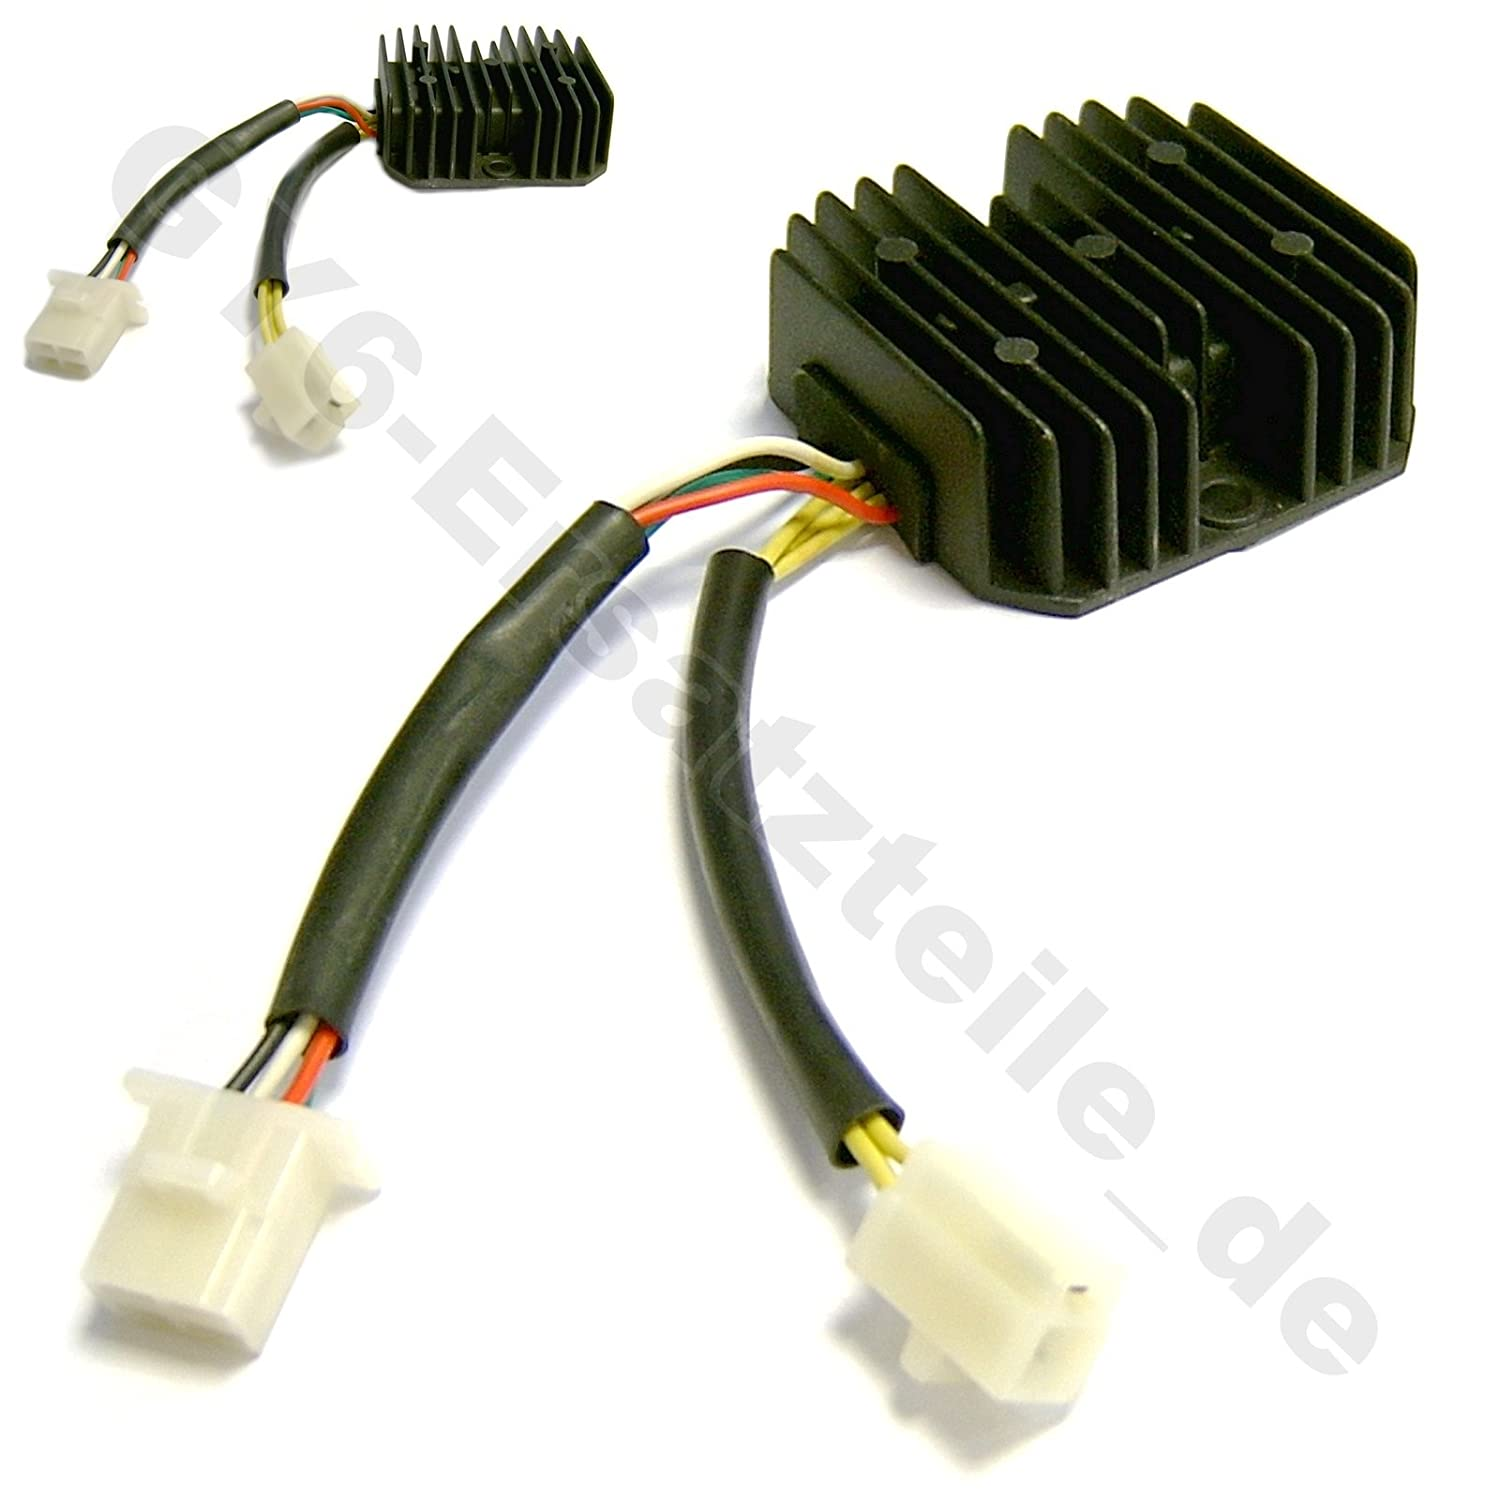 BMS ..... OEM VOLTAGE REGULATOR// RECTIFIER 12V 3+4 PINS IN 2 PLUGS FOR 11 POLE STARTOR 125-200CC CHINESE SCOOTER GY6 4STROKE MOPED ATV TAOTAO ROKETA PEACE JONWAY ZNEN BMS BAJA ROKETA VENTO SUNL VIP